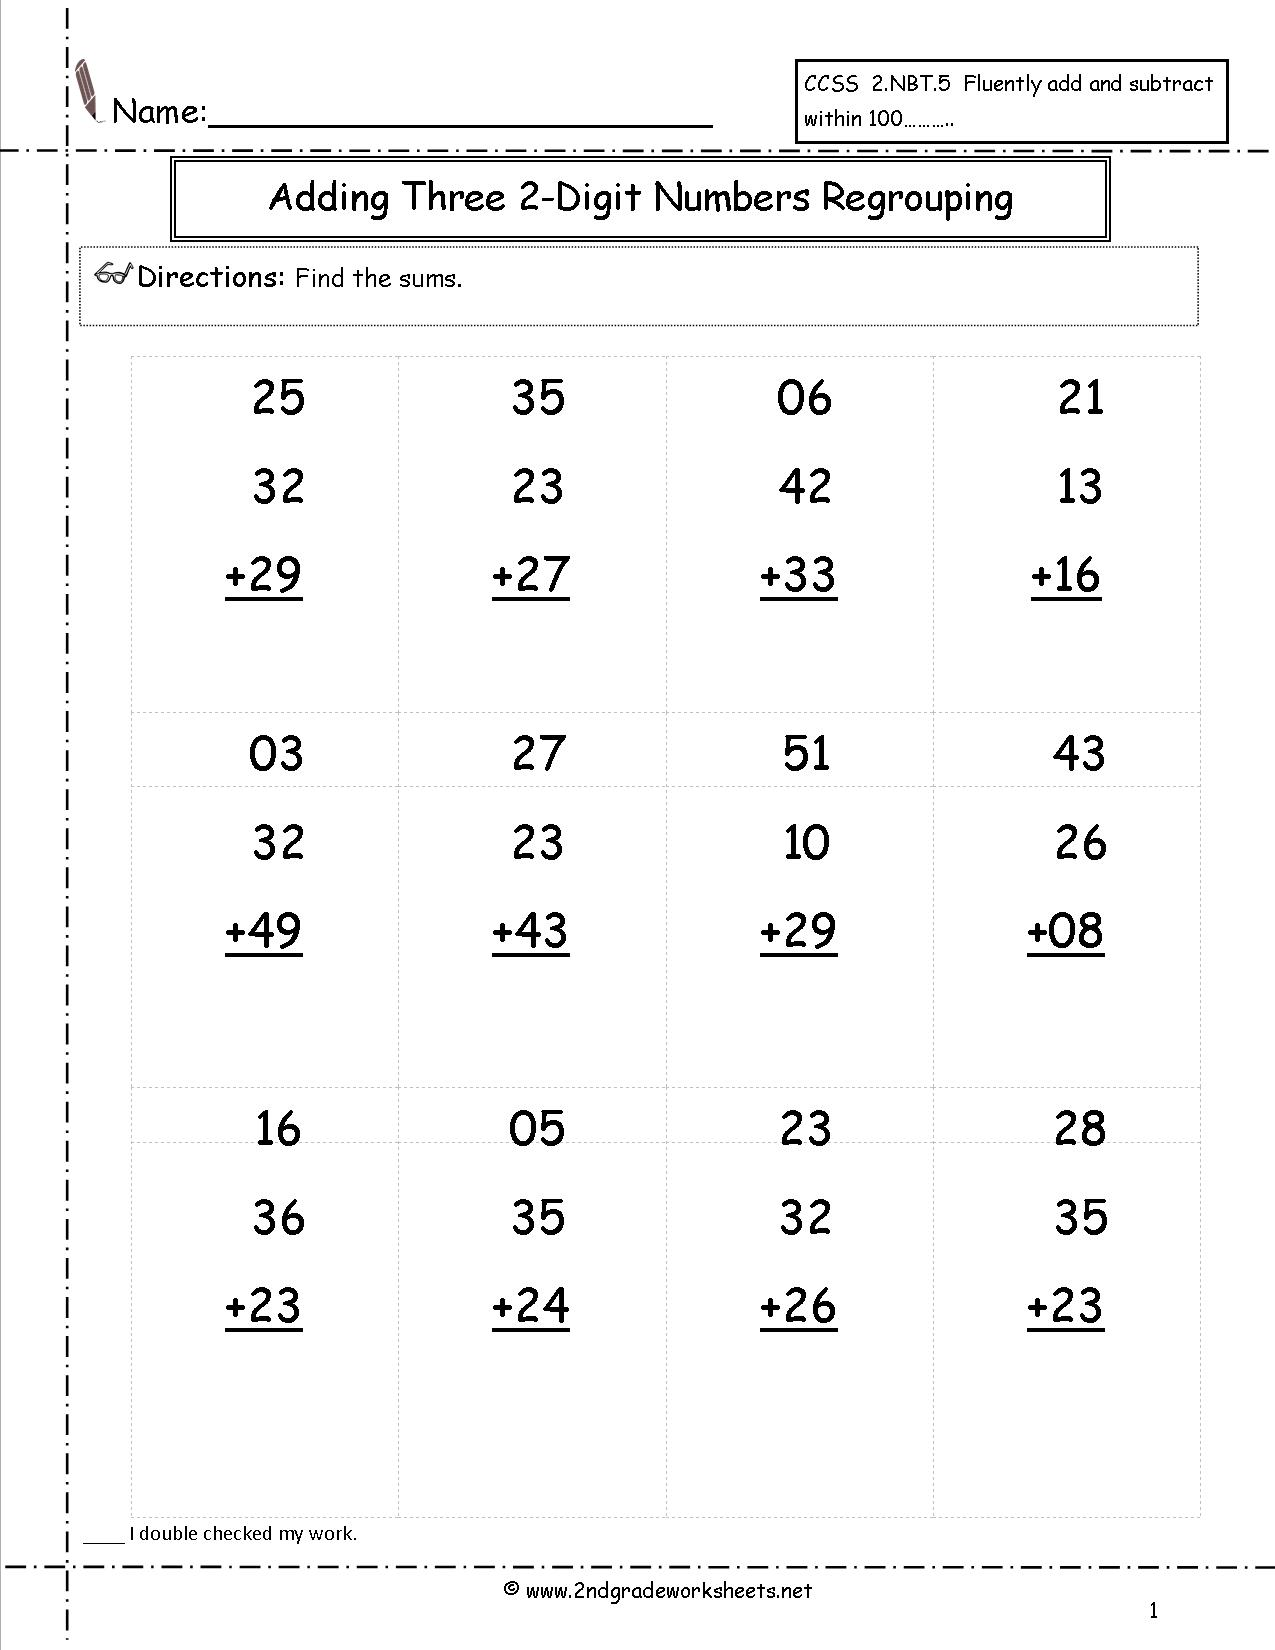 11 Best Images Of Math Worksheets Rounding To 100